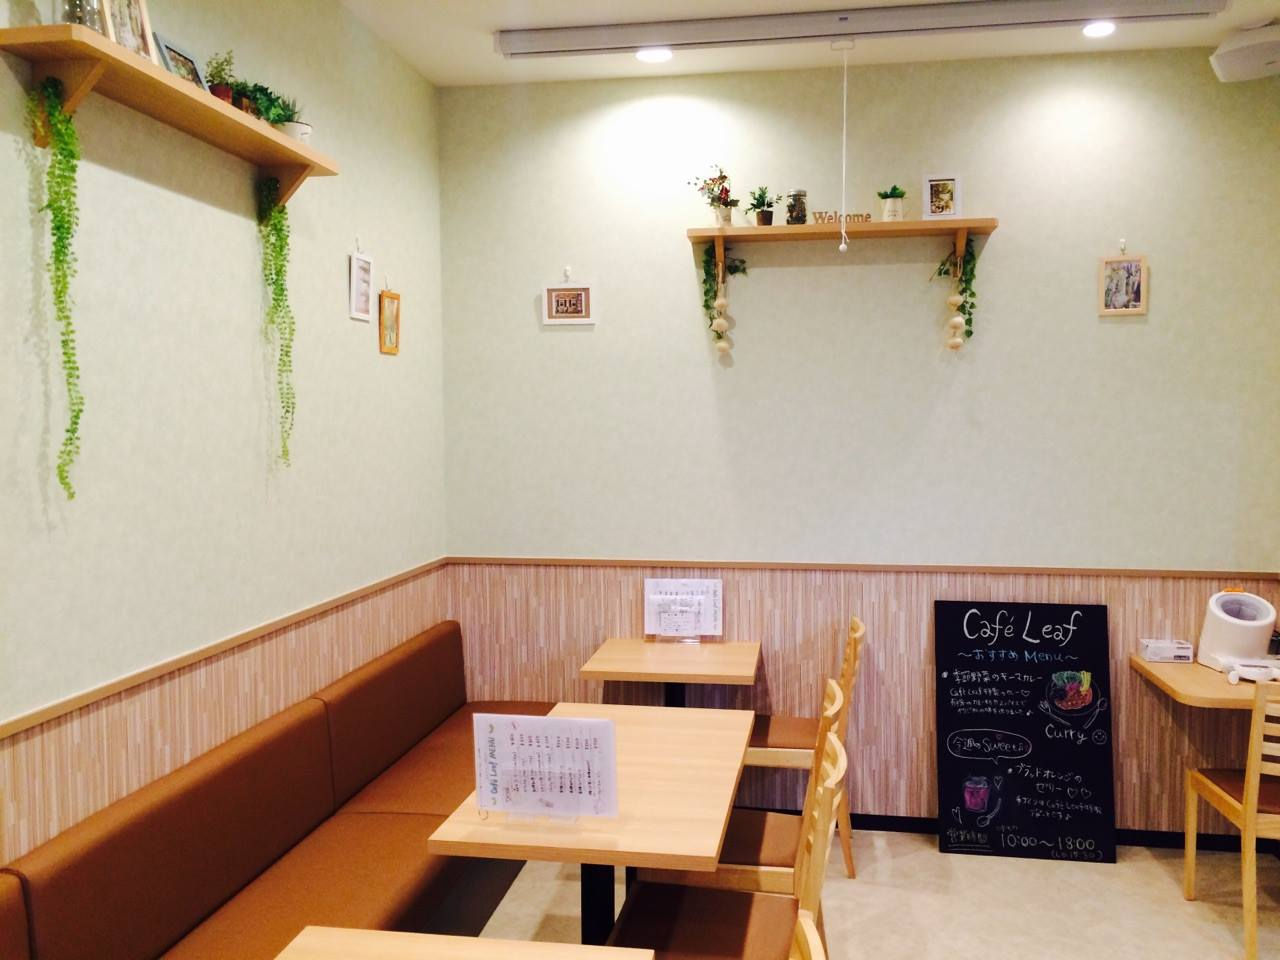 cafe leaf inside